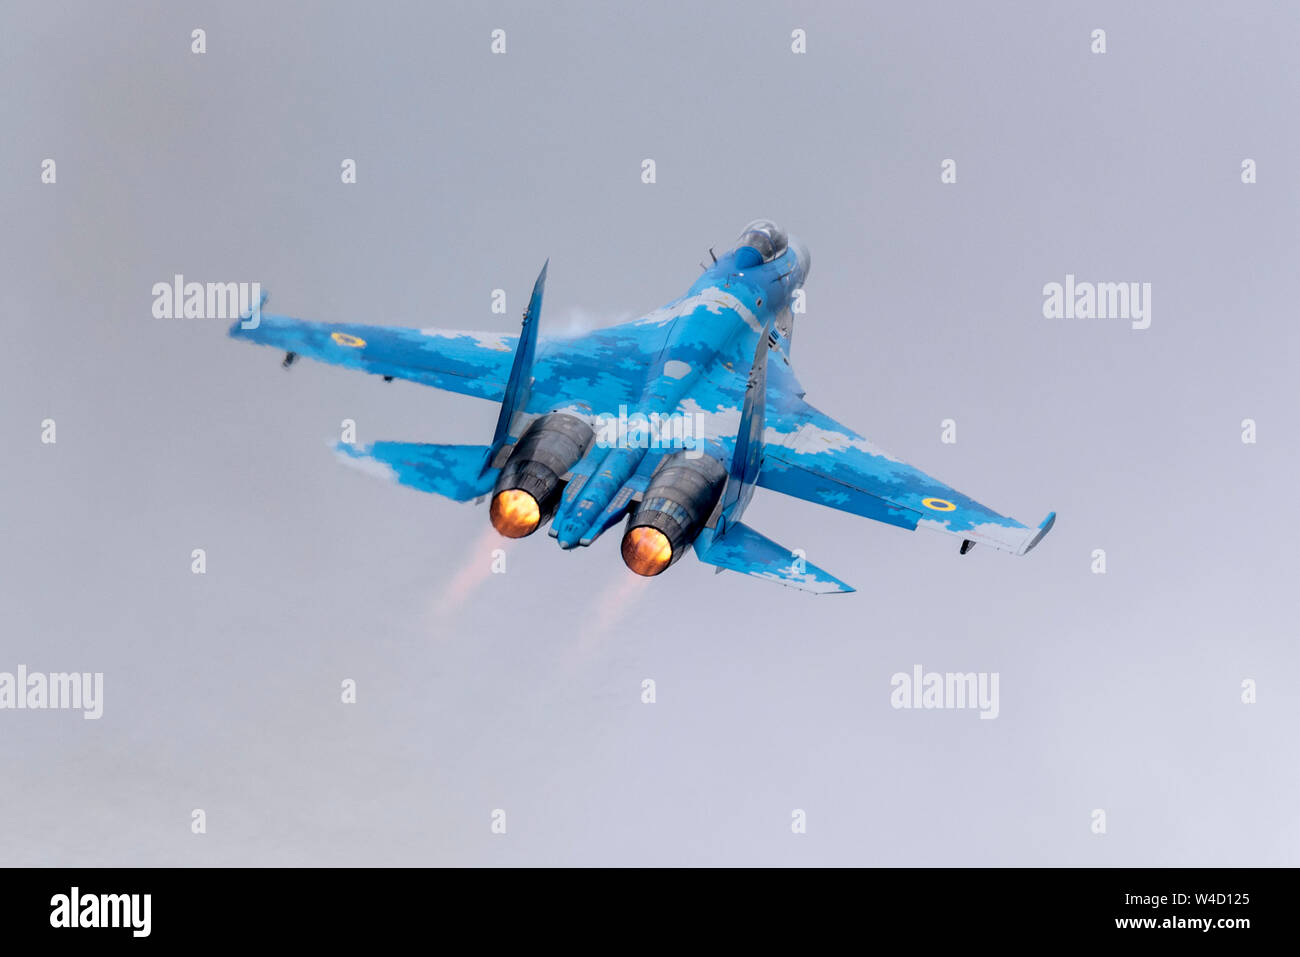 ukrainian-sukhoi-su-27-flanker-fighter-plane-at-royal-international-air-tattoo-riat-2019-raf-fairford-russian-jet-fighter-flying-airshow-air-display-W4D125.jpg